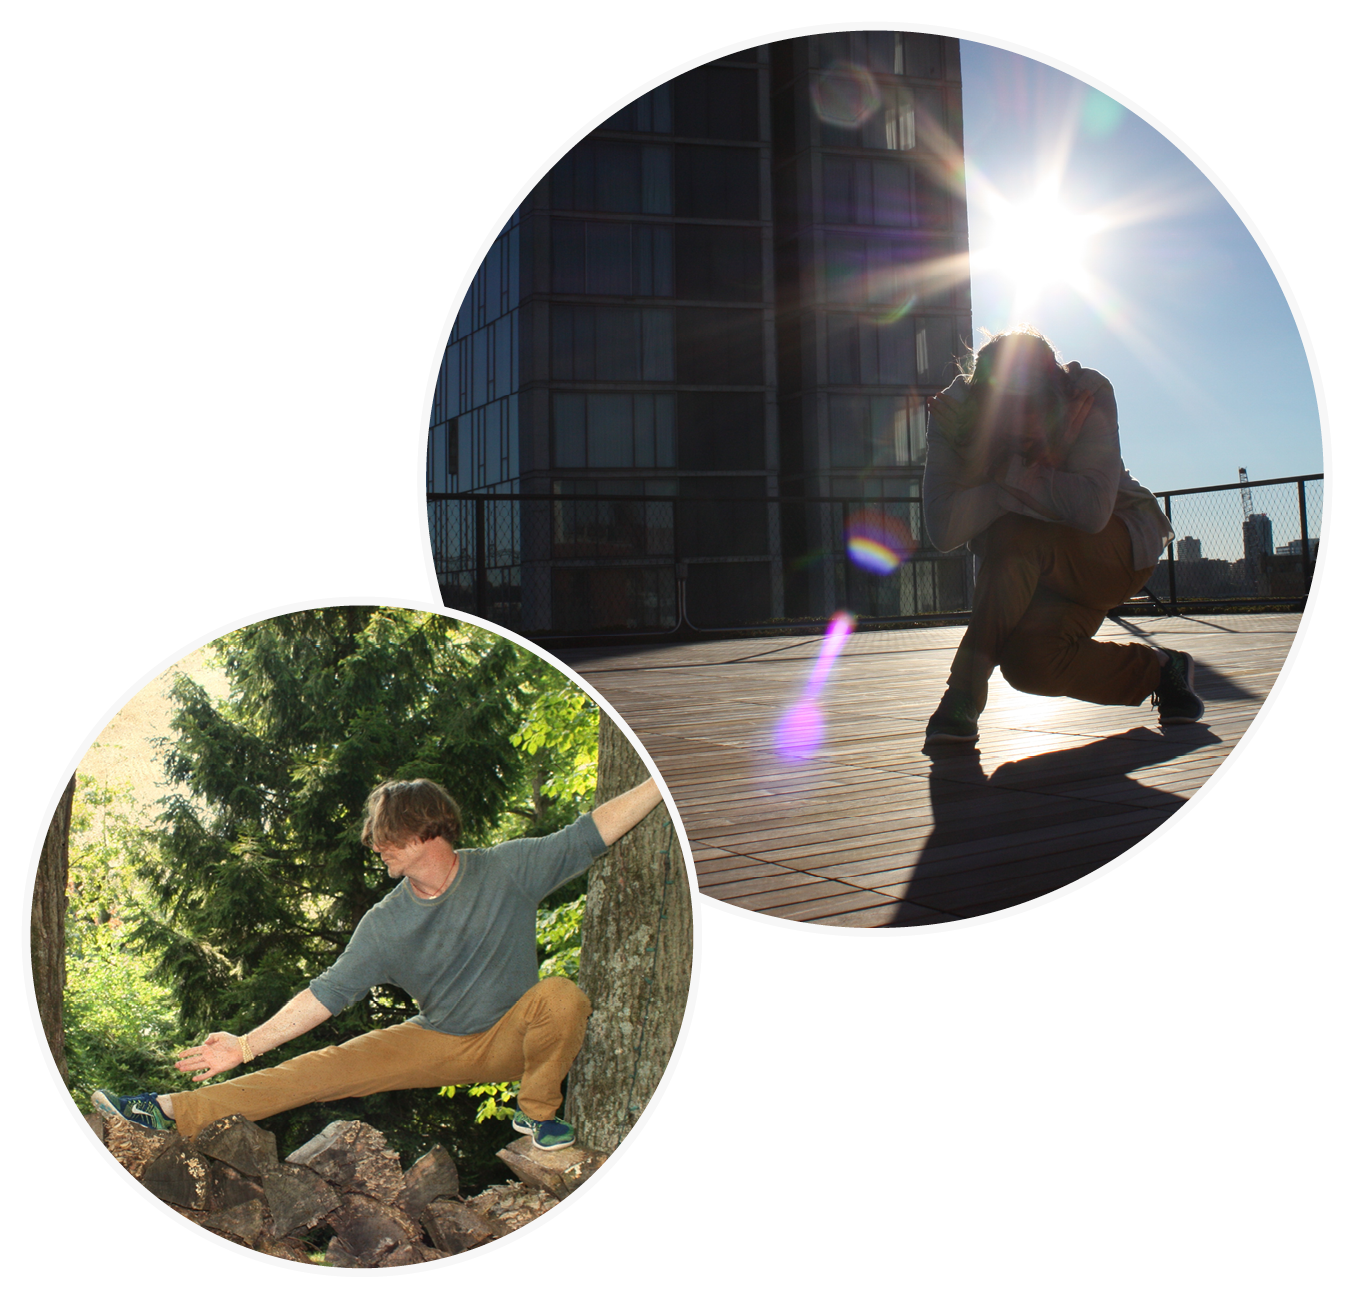 Thomas Droge teaches qi gong movement meditation as a resource for living a thriving, fulfilling life that allows you to handle the ebbs and flows with presence, balance, robust health, and spiritual awareness